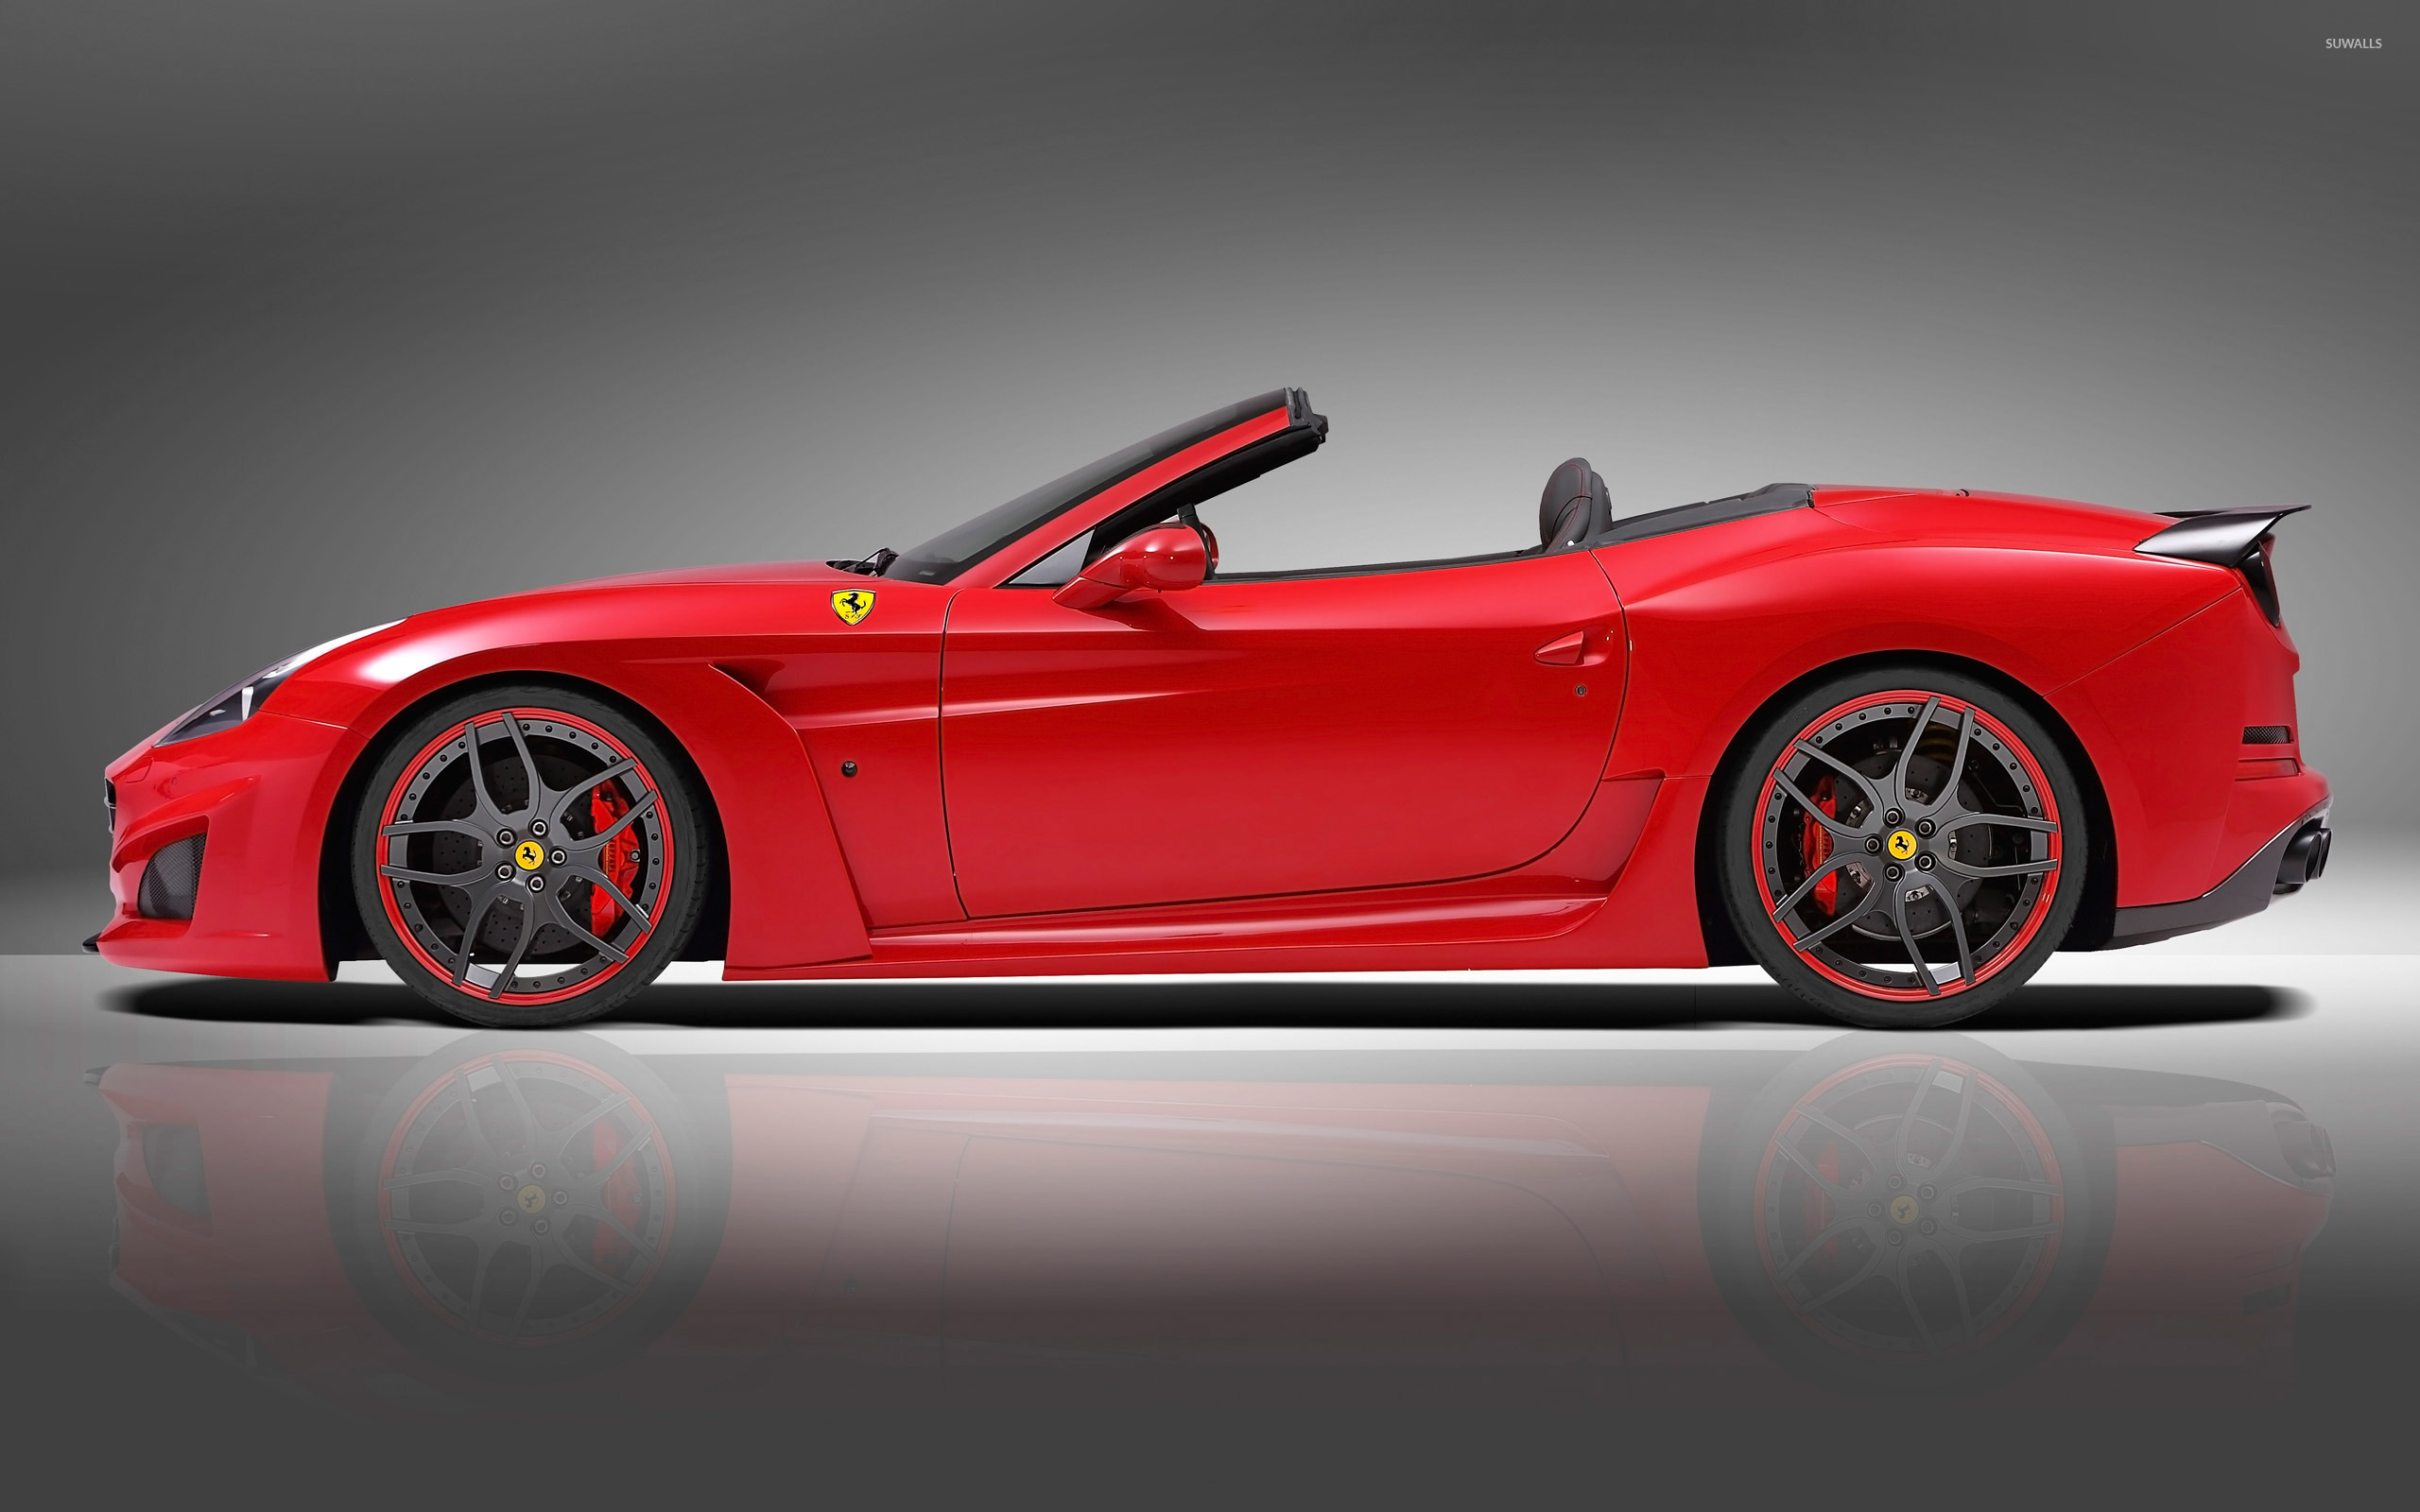 Mercedes Modified Cars Wallpapers 2015 Novitec Rosso Ferrari California Convertible Side